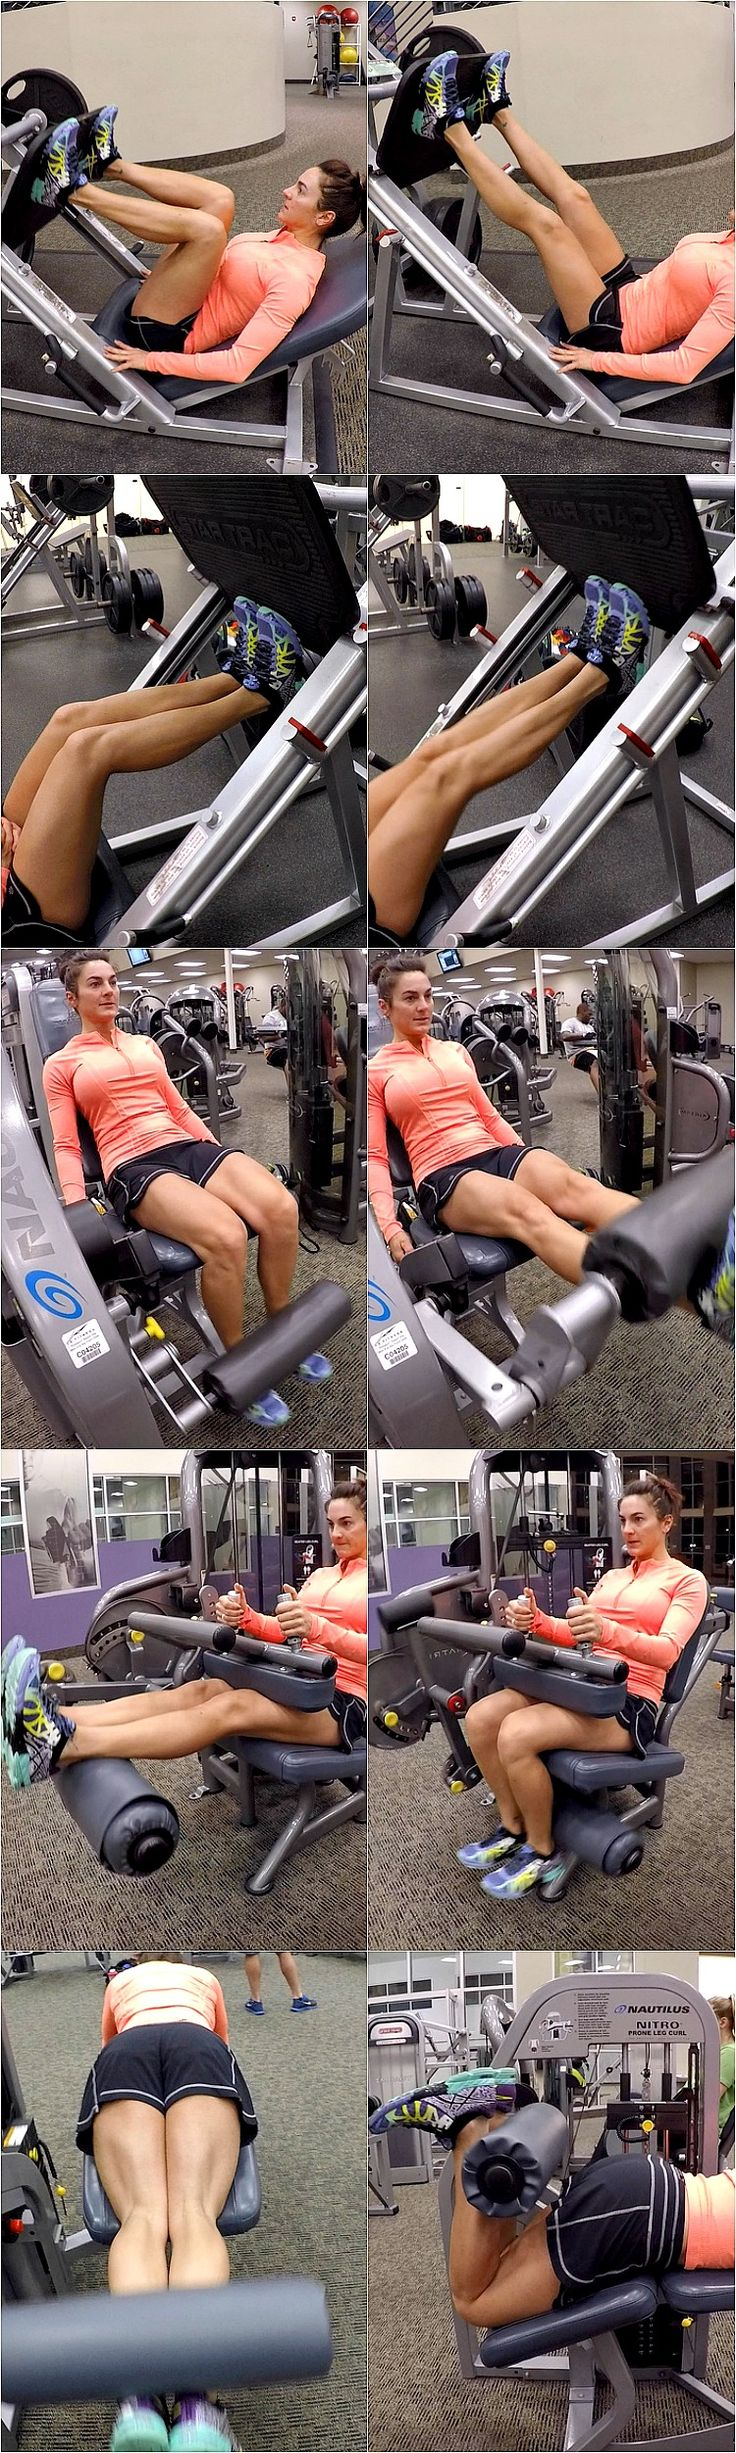 10 WEEKS TO FITNESS-DAY 28-LEGS & CALVES